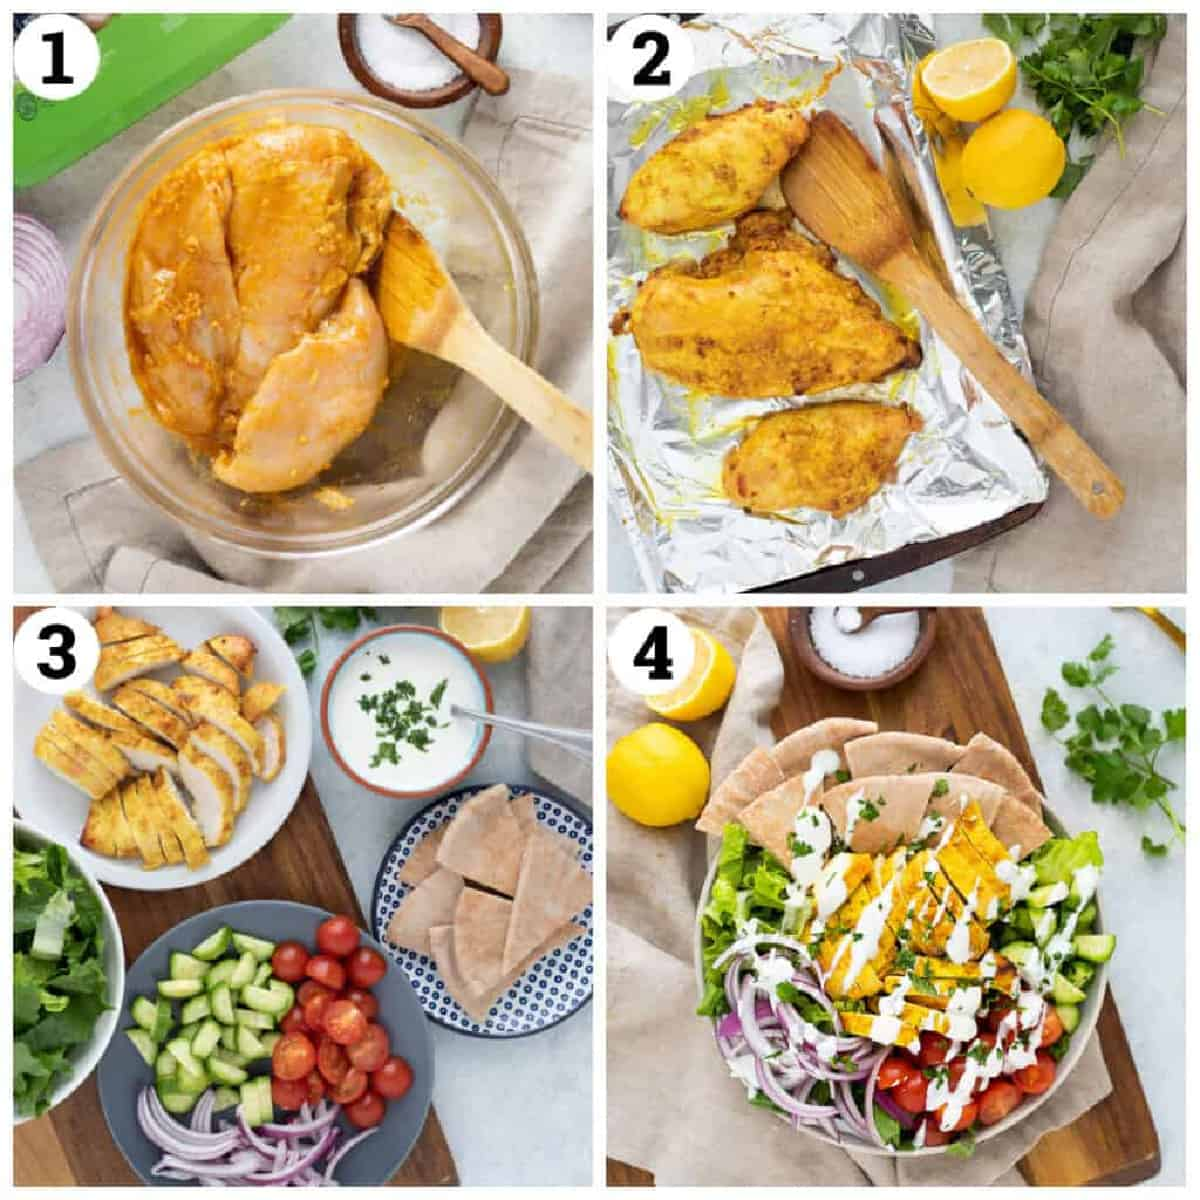 marinate the chicken in the spices and olive oil. Bake in the oven, slice up and serve on salad with vegetables.